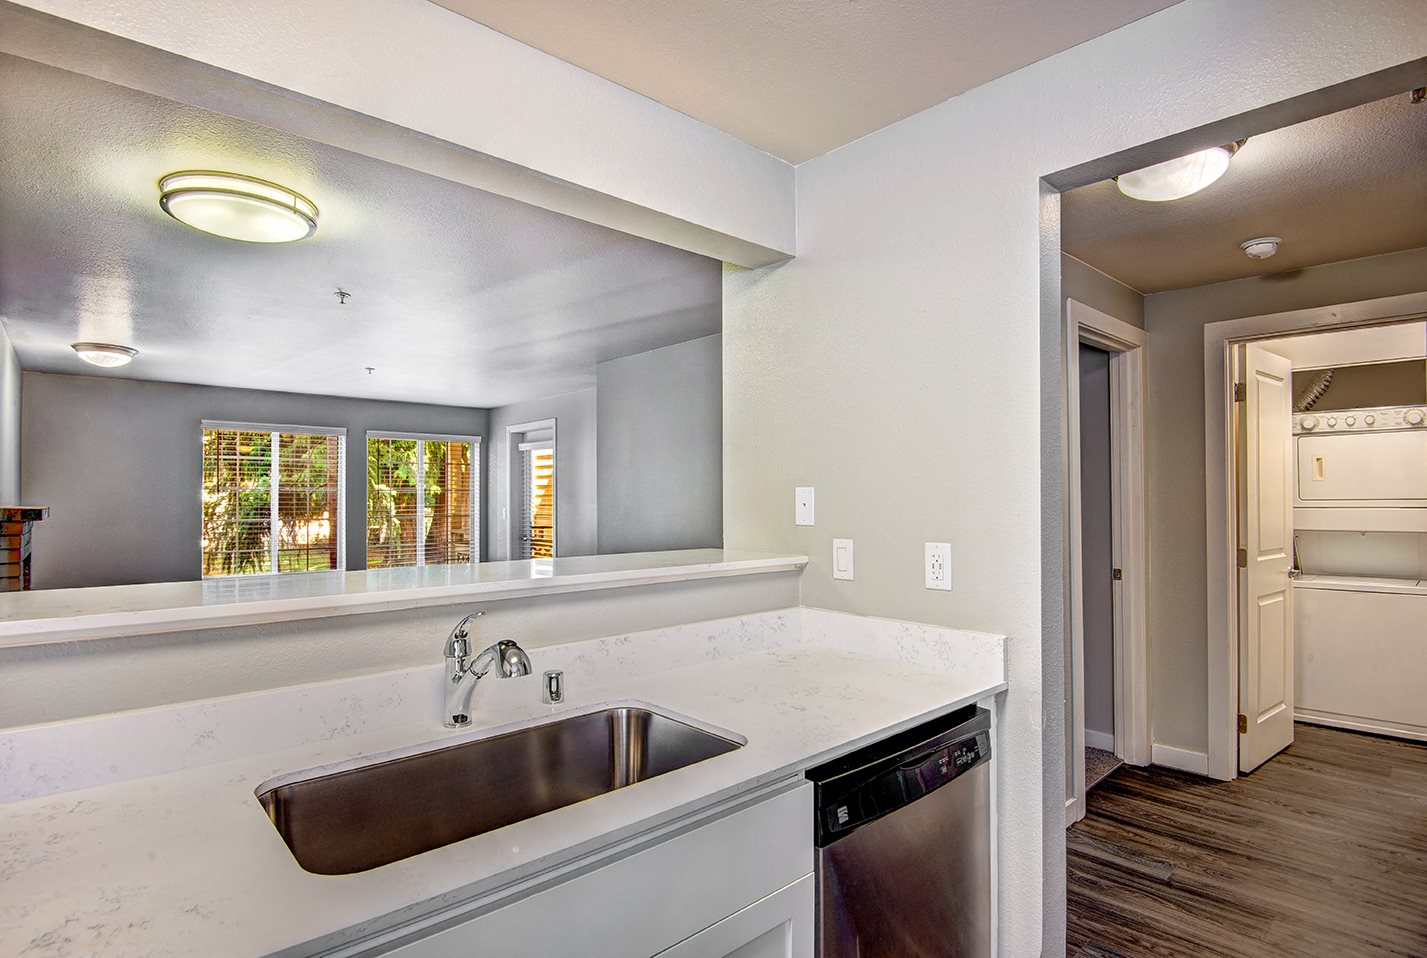 renovated unit kitchens feature white cabinets and equipped with stainless steel appliances